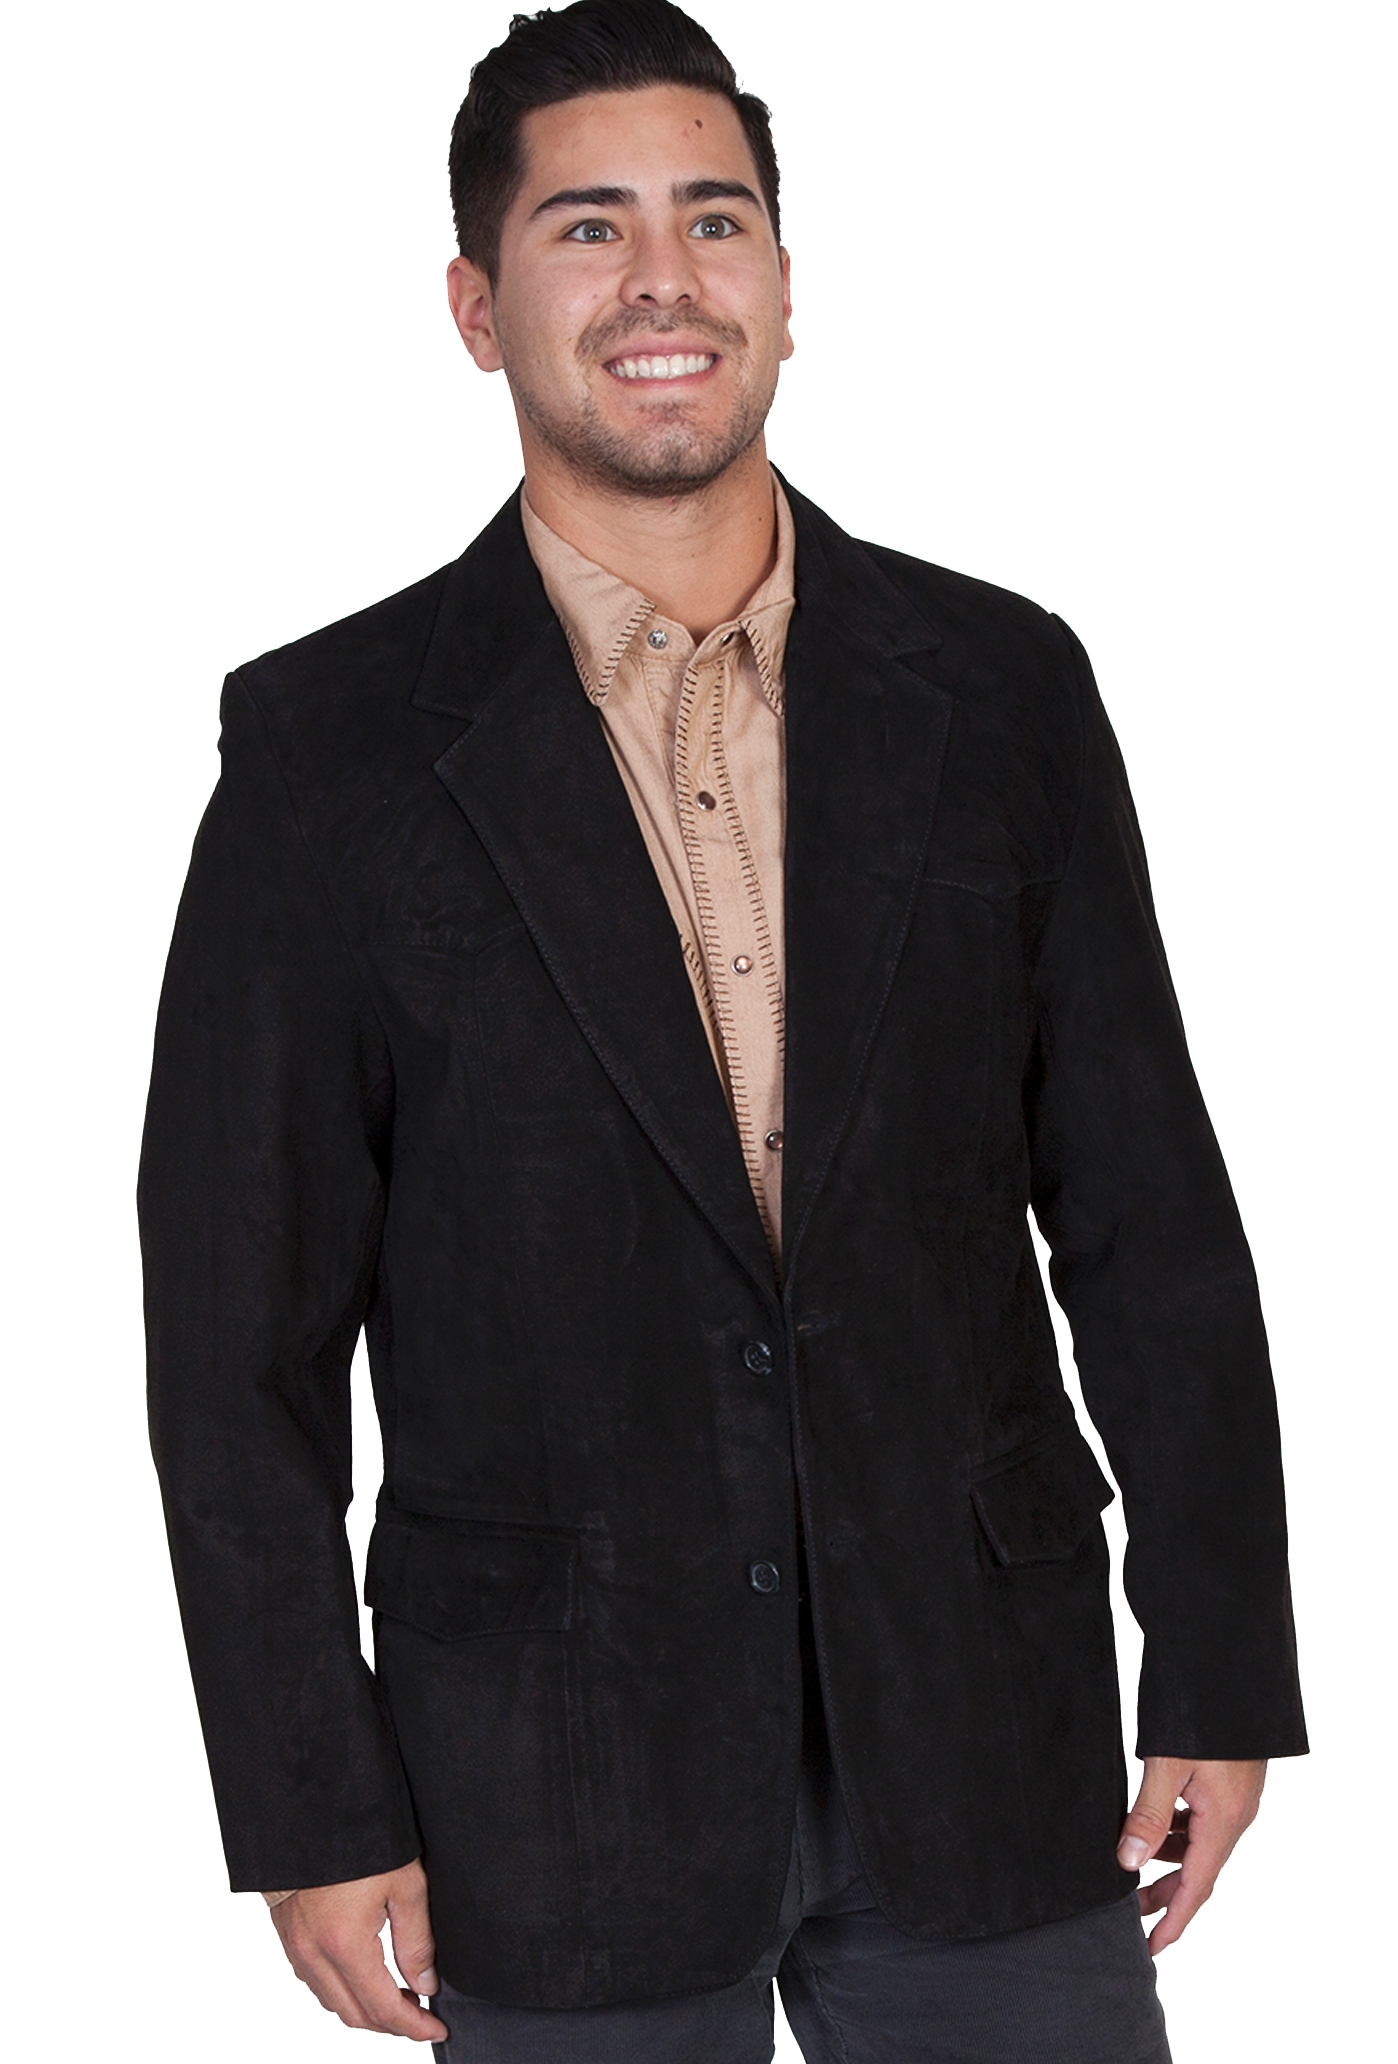 Scully Mens Black Lambskin Suede Western Blazer , cowboy jacket, cowboy coats, cowboy blazers, western jackets for men, western blazer, western coats, scully blazers, scully coats, scully